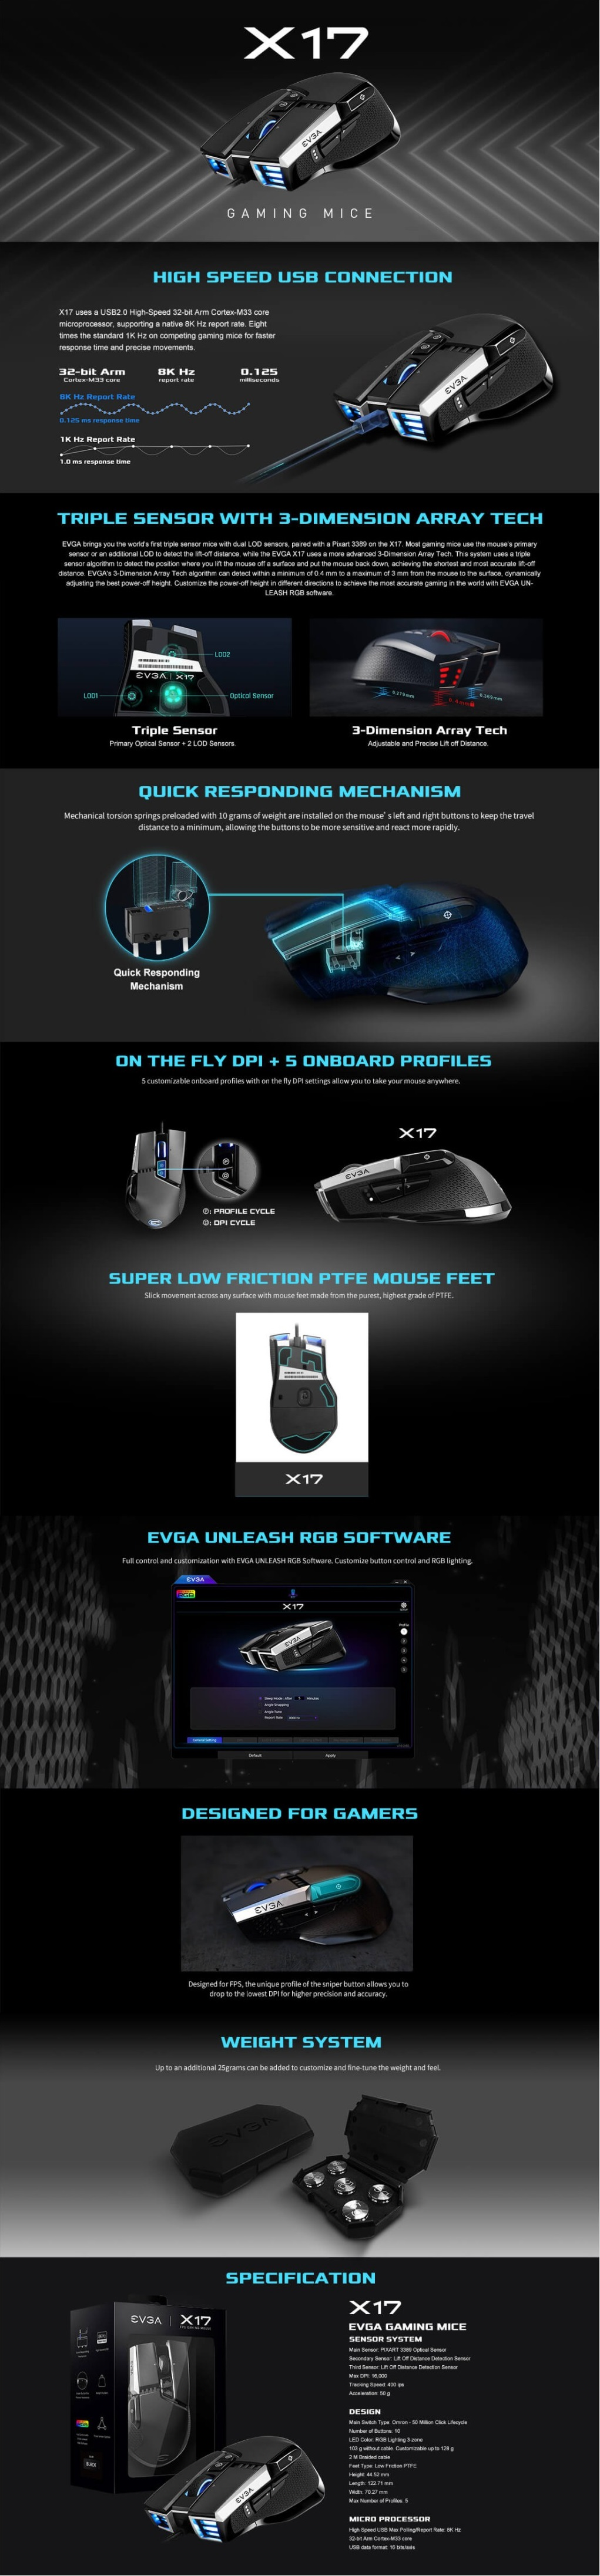 A large marketing image providing additional information about the product eVGA X17 Wired Gaming Mouse Black - Additional alt info not provided